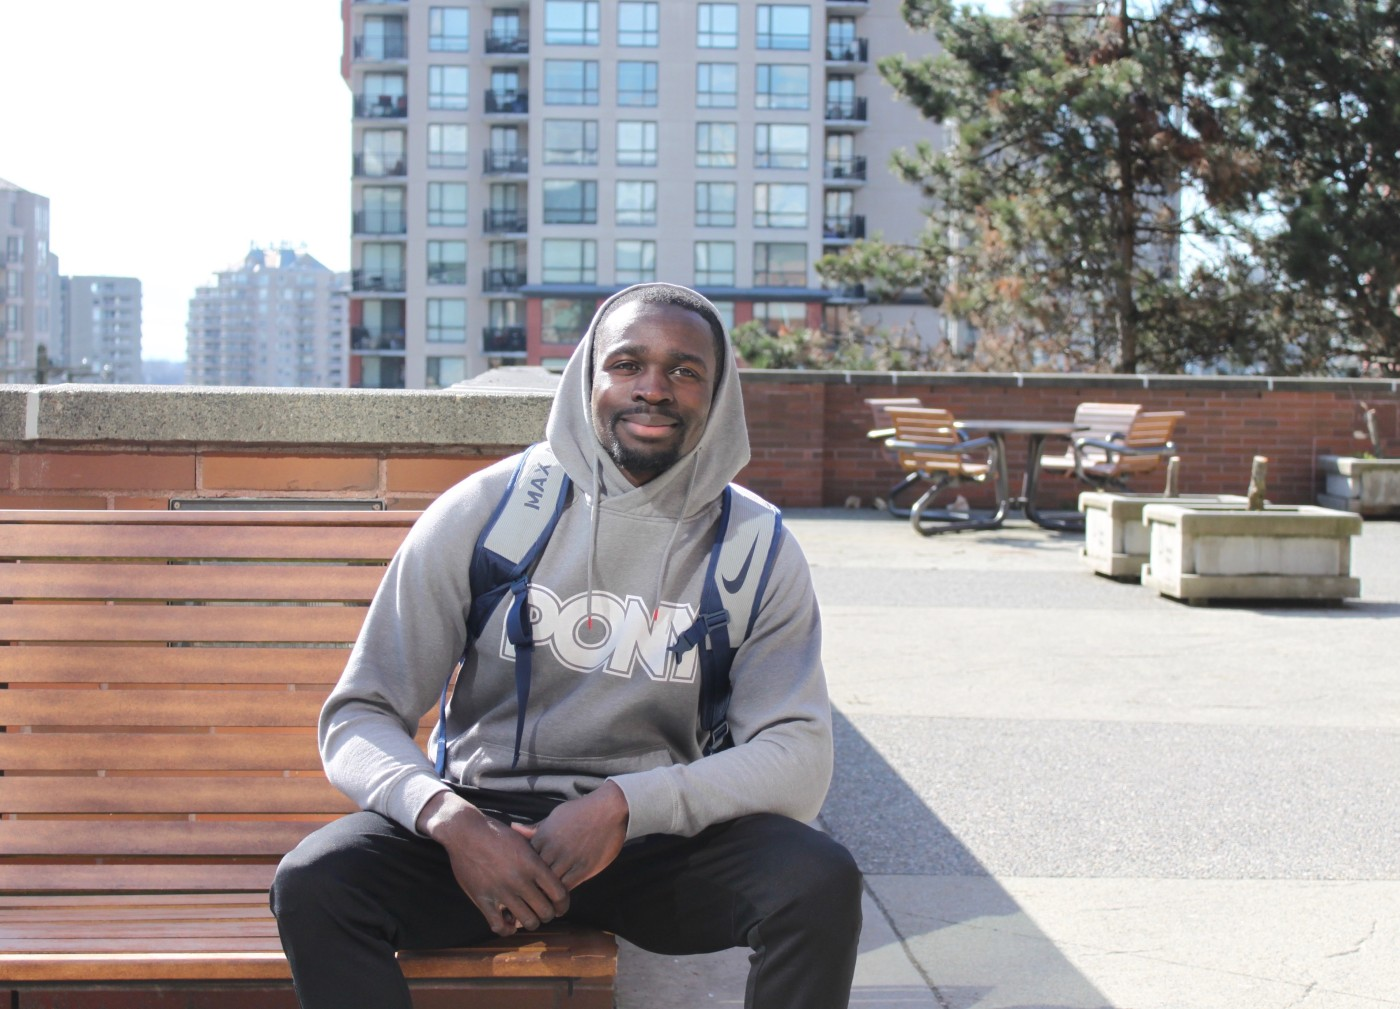 Humans of DC, Humans of Douglas College, portrait of student on bench